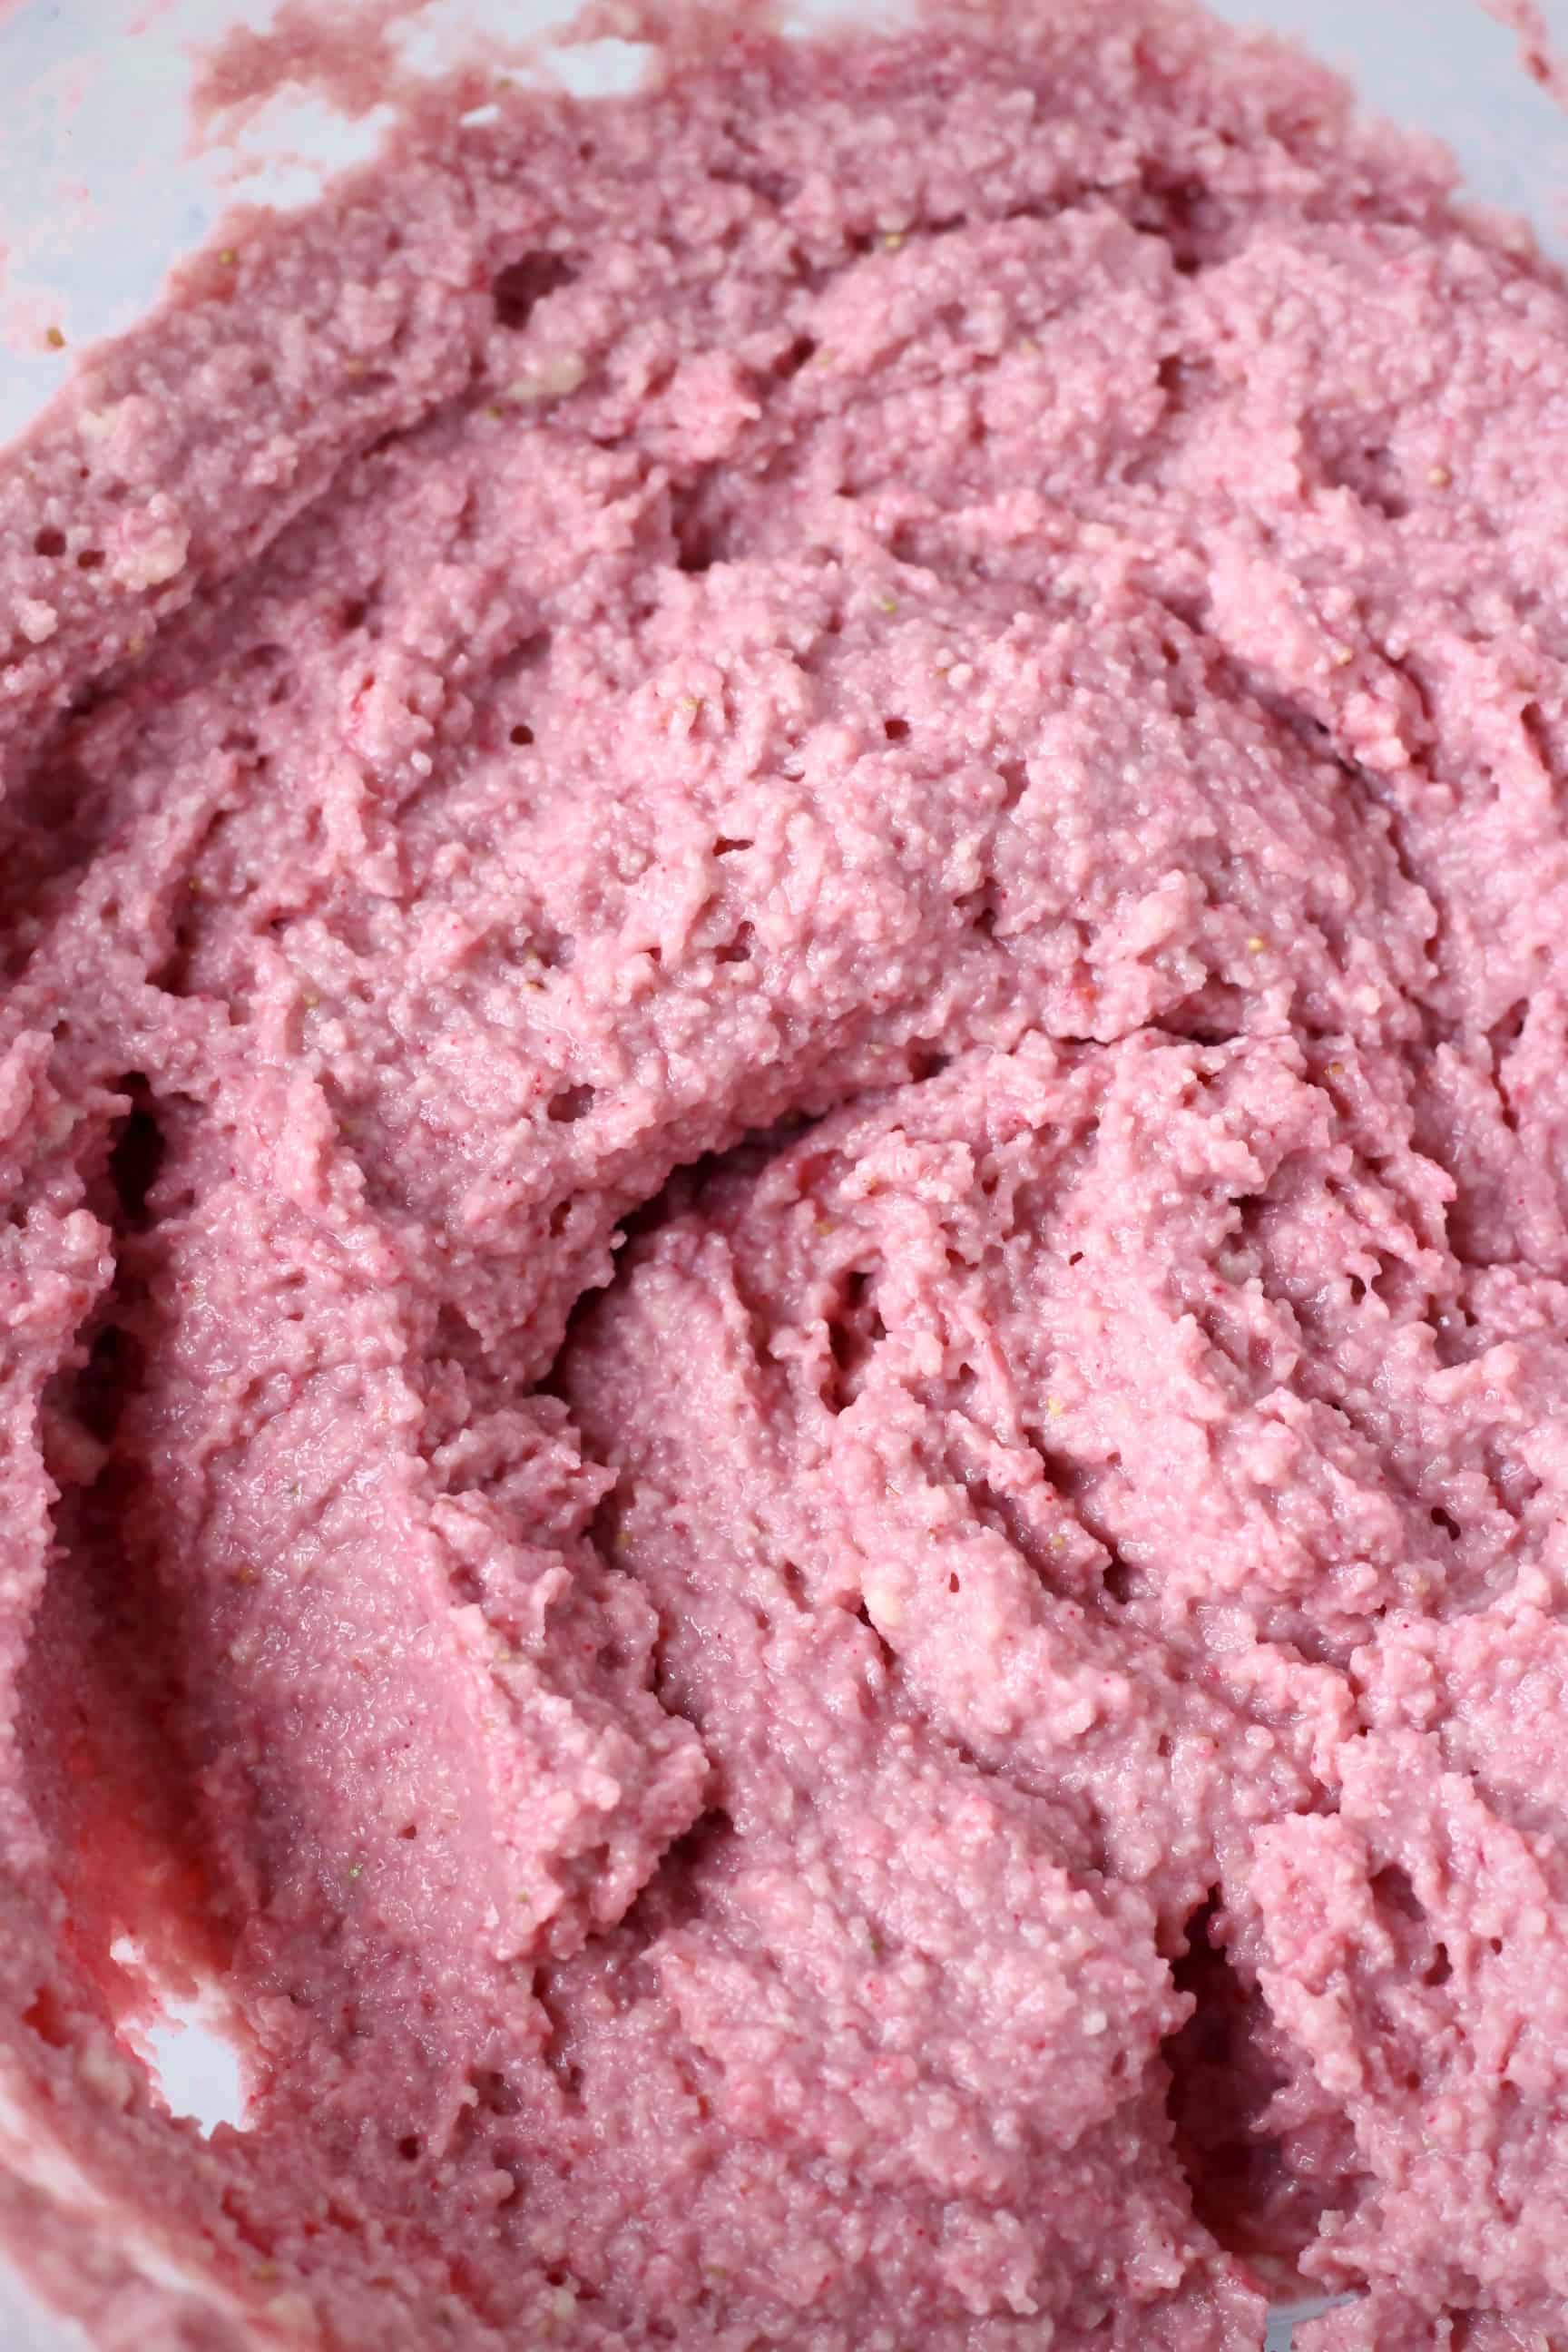 Raw pink gluten-free vegan strawberry cake batter in a bowl